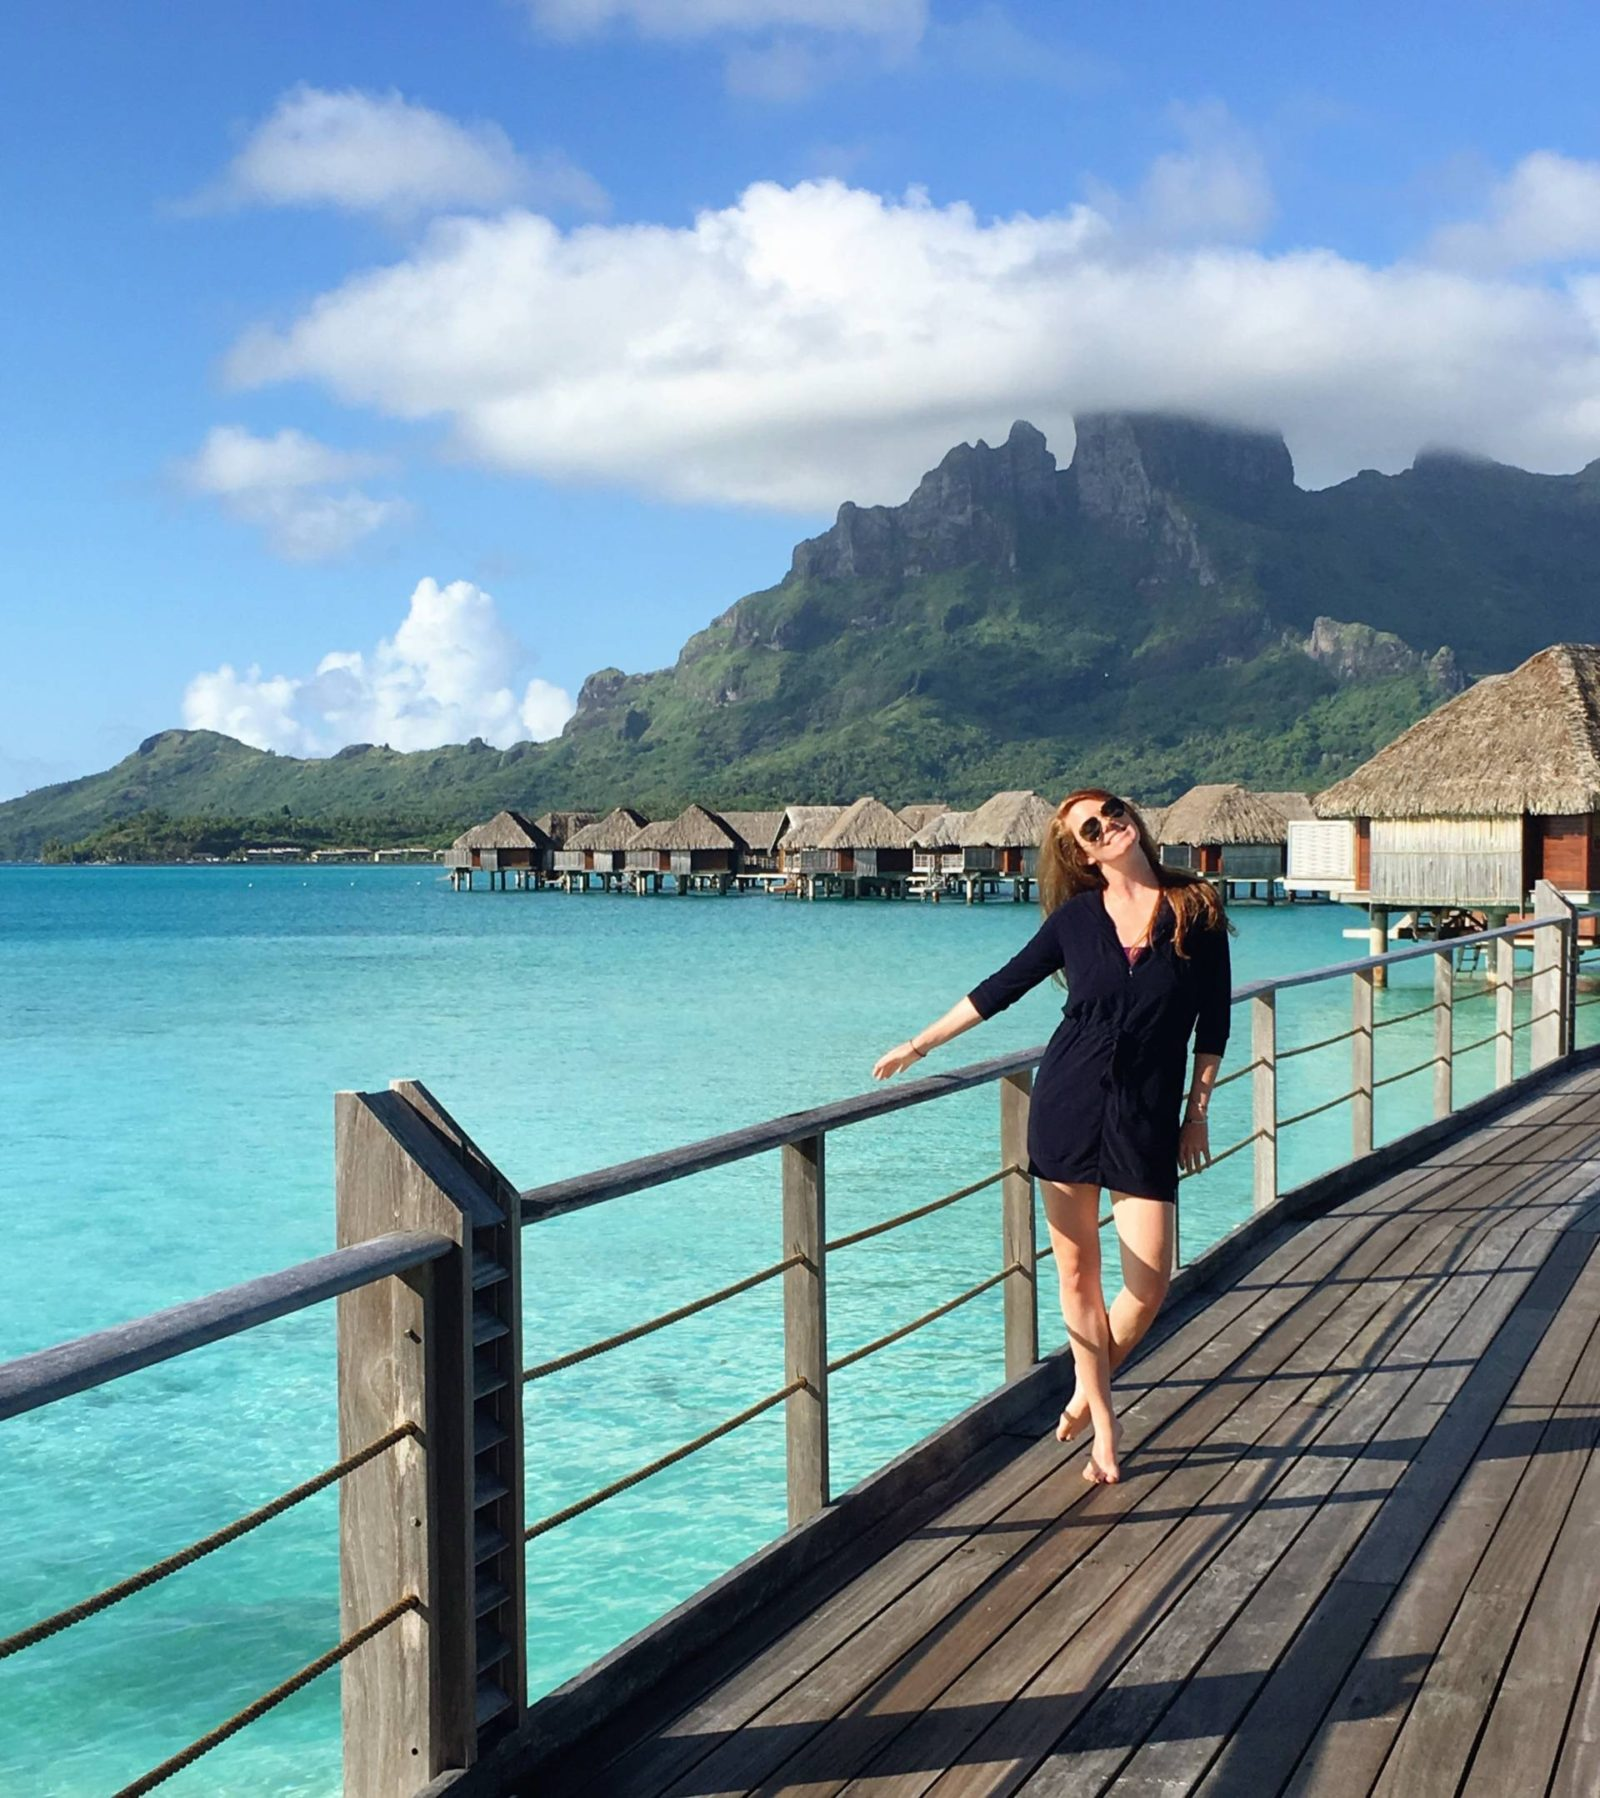 Four Seasons Bora Bora The Jetset Redhead